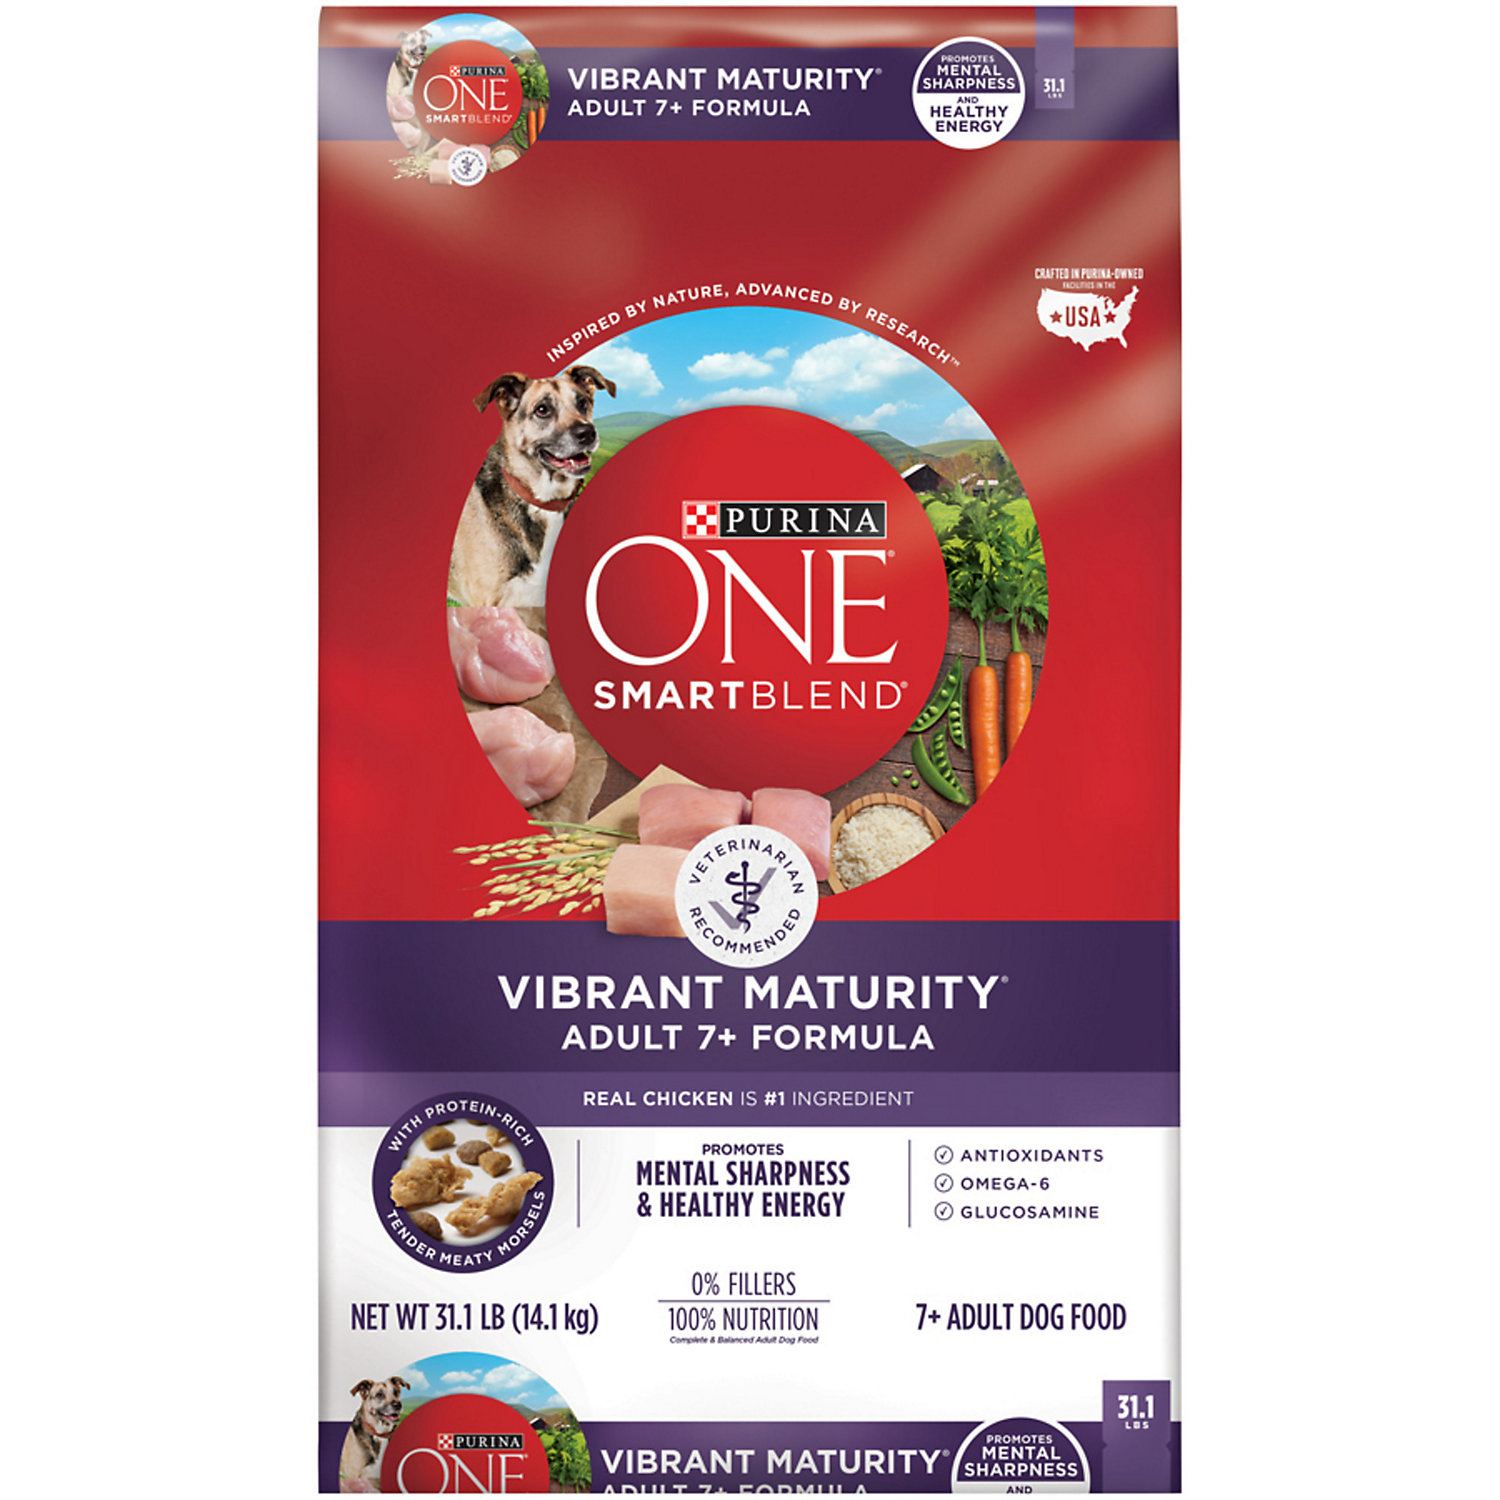 Purina One Smartblend Vibrant Maturity 7 Senior Formula Dog Food 31.1 Lbs.